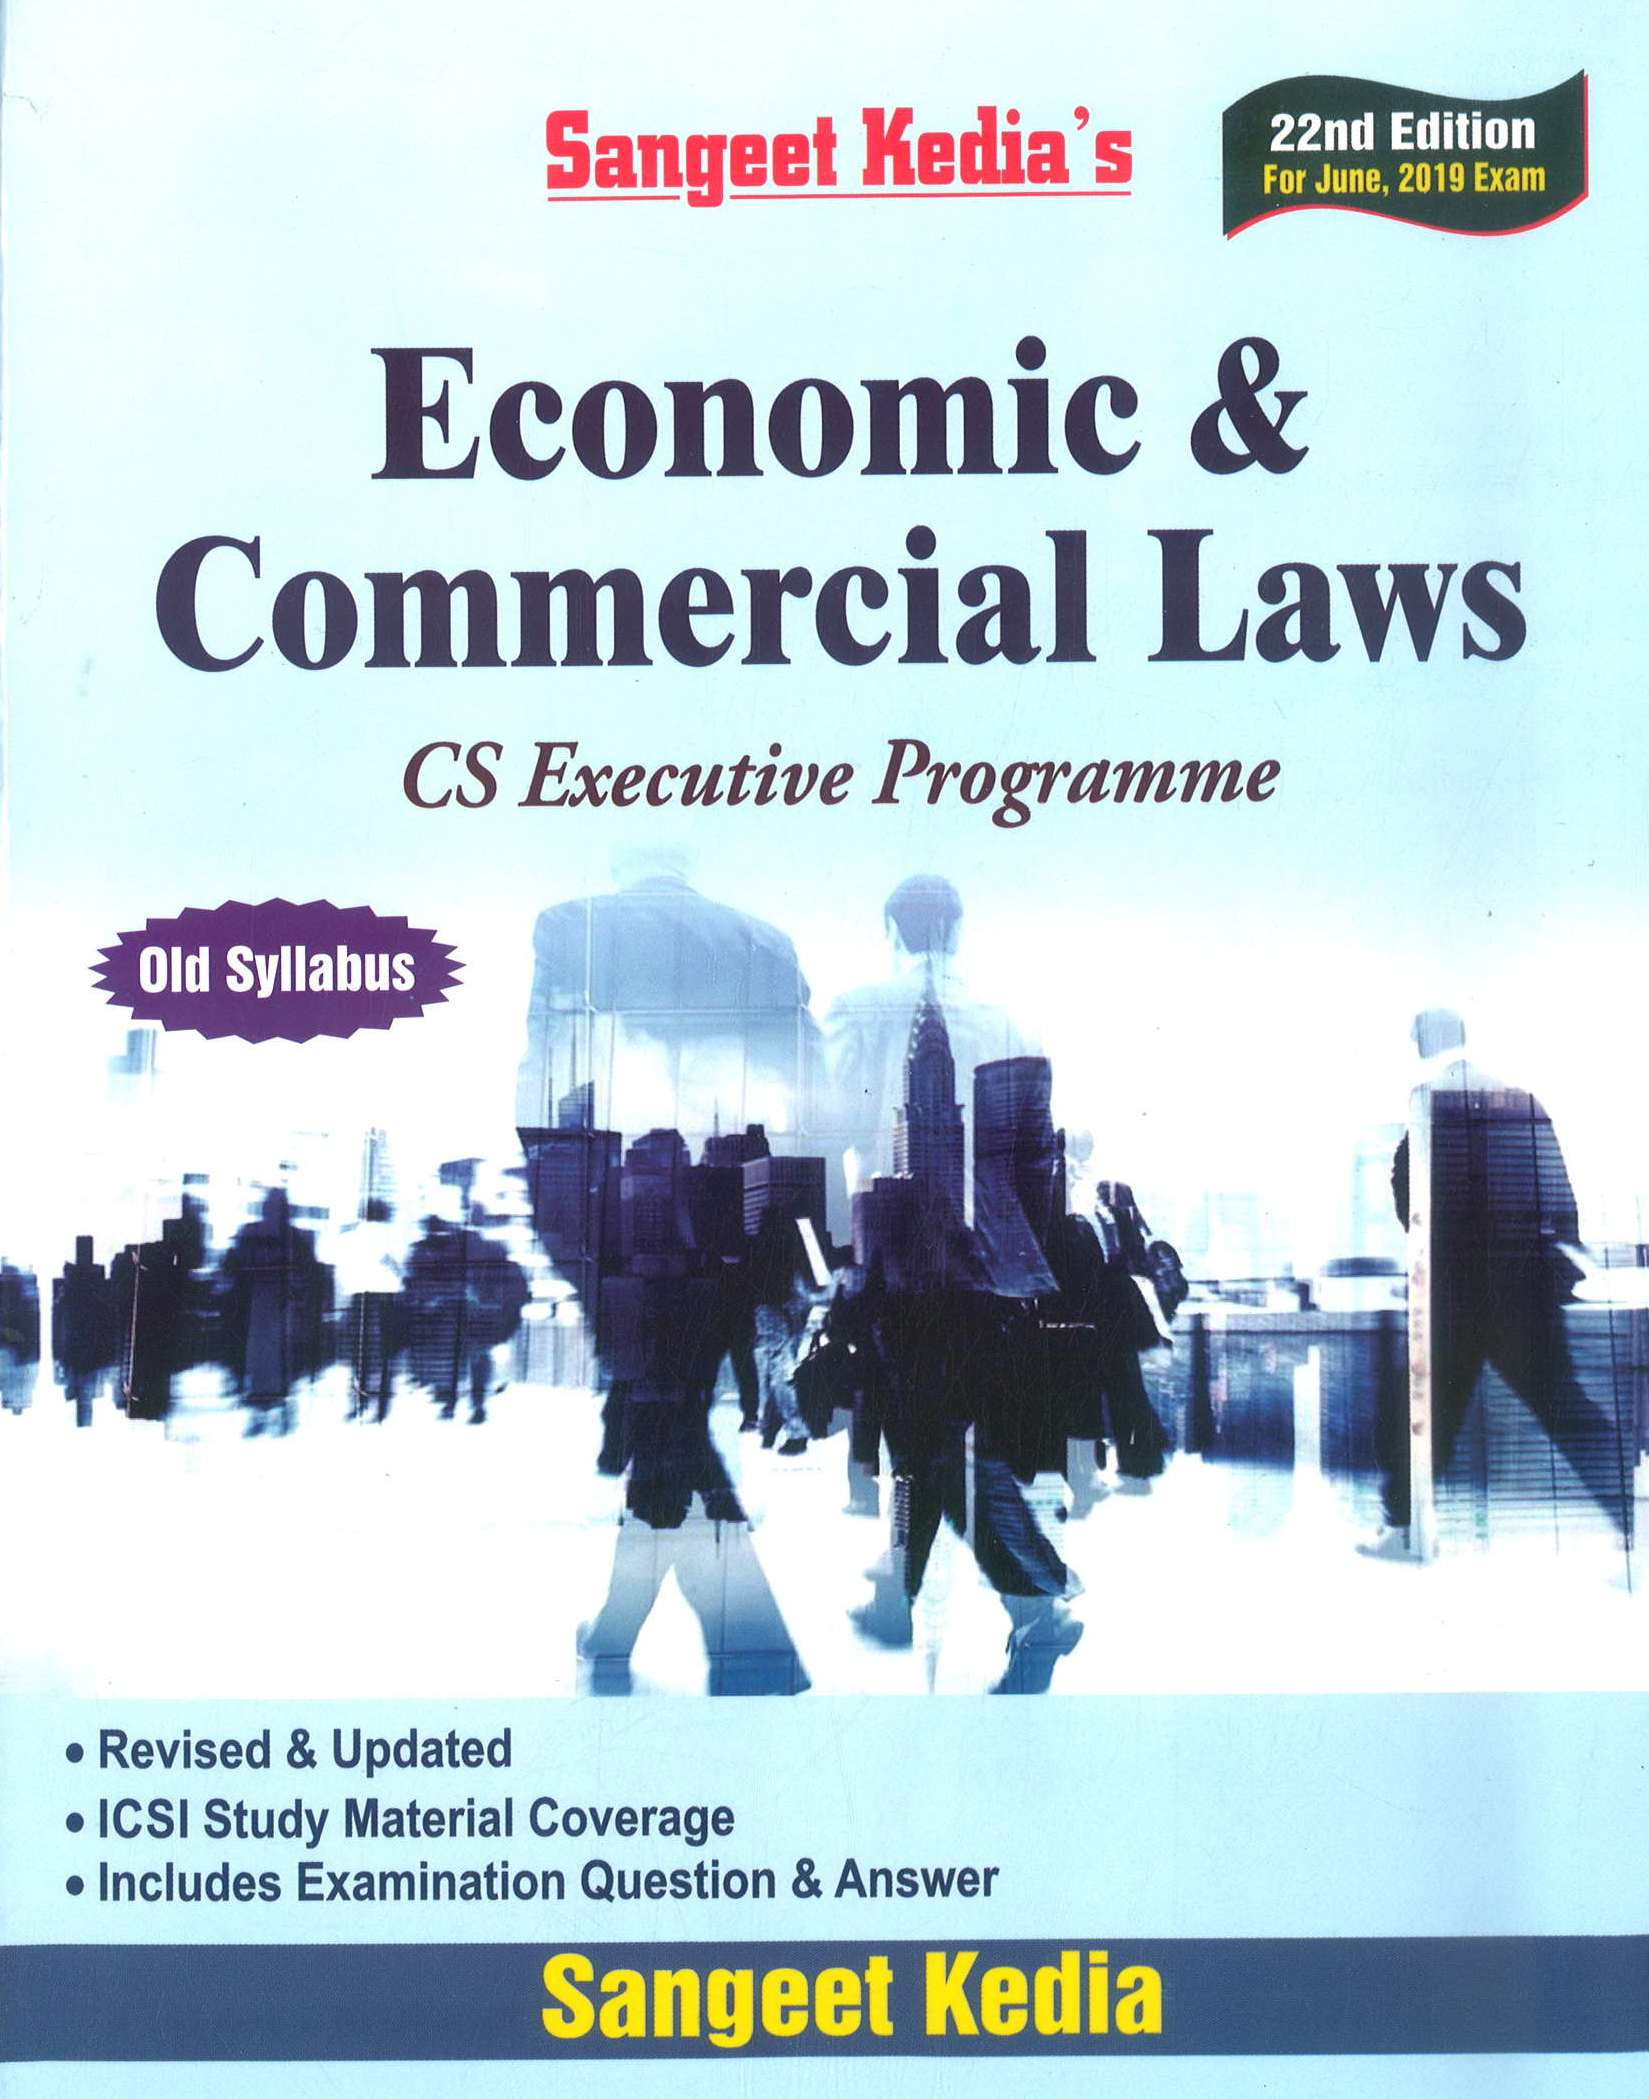 Pooja Law House CS Executive Economic & Commercial Laws (Old Syllabus) by Sangeet Kedia Applicable for June 2019 Exam (Pooja Law House Publishing) Edition 22nd, 2019